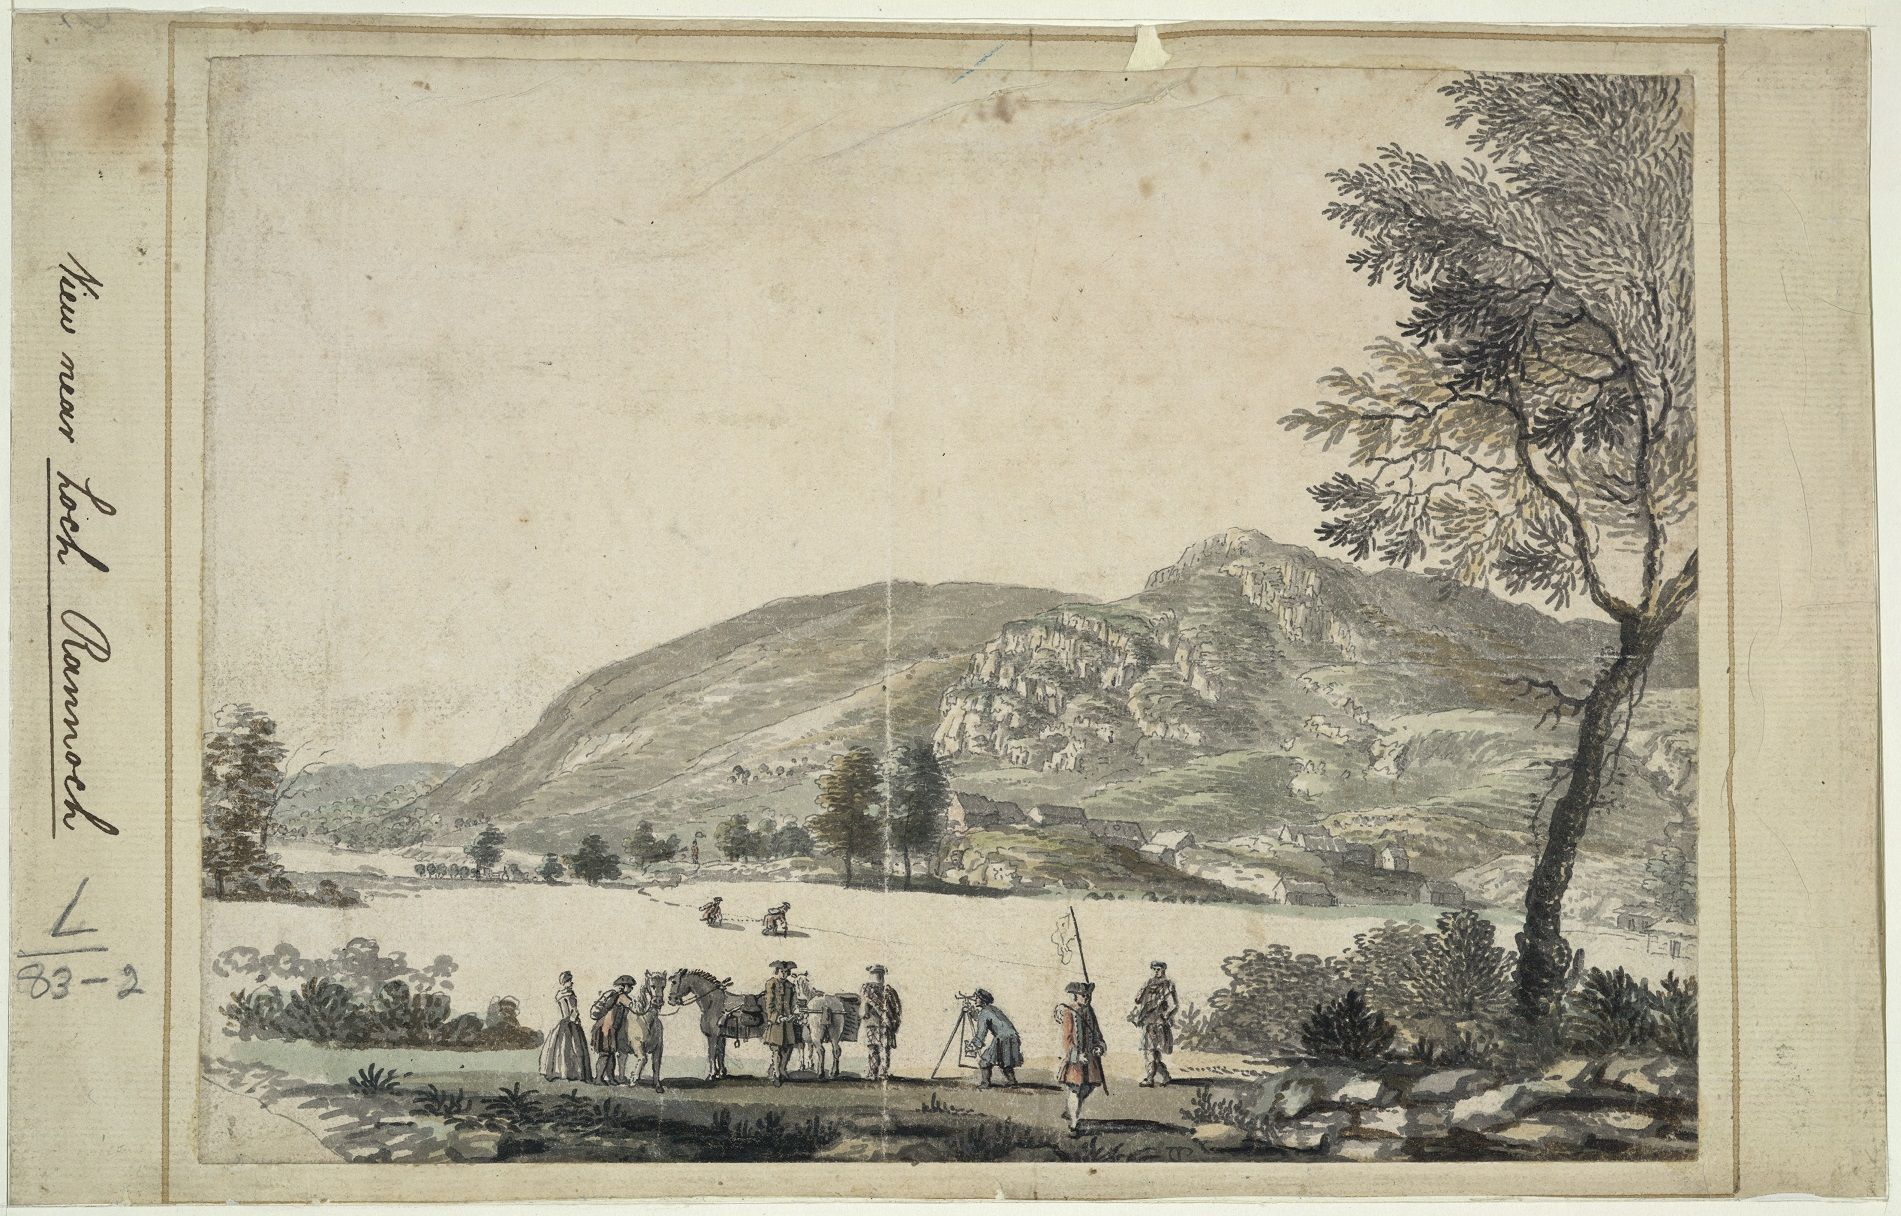 Paul Sandby, View Near Loch Rannoch, 1749. Reproduced with permission of The British Library